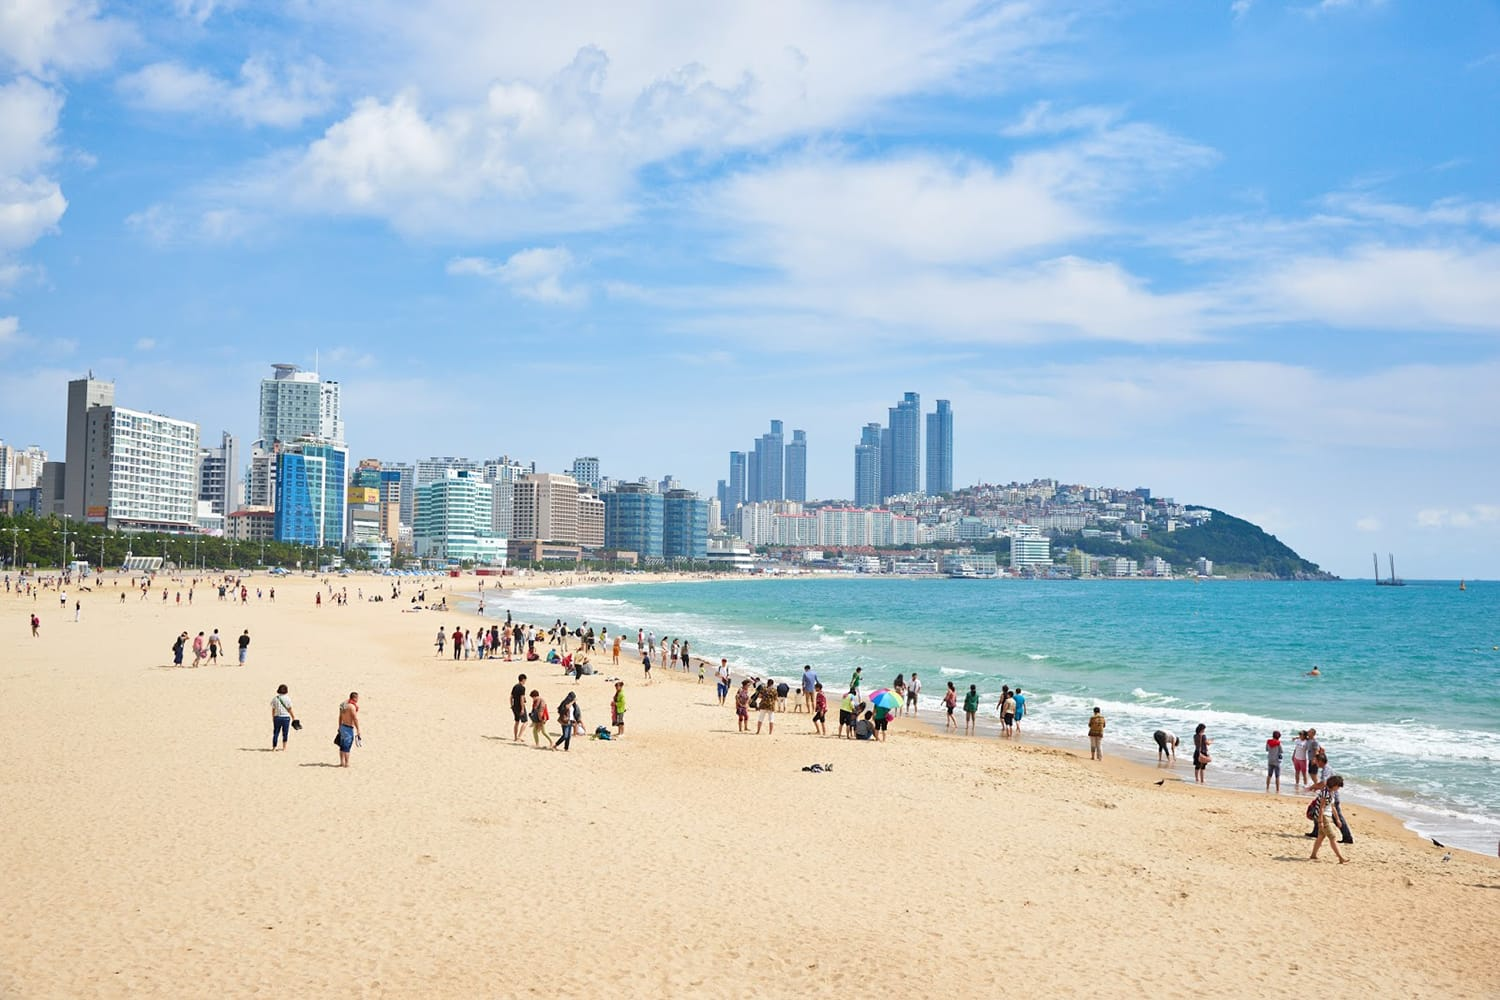 Haeundae beach is Busan's most popular beach because of its easy access from downtown Busan. And It is one of the most famous beaches in South Korea.